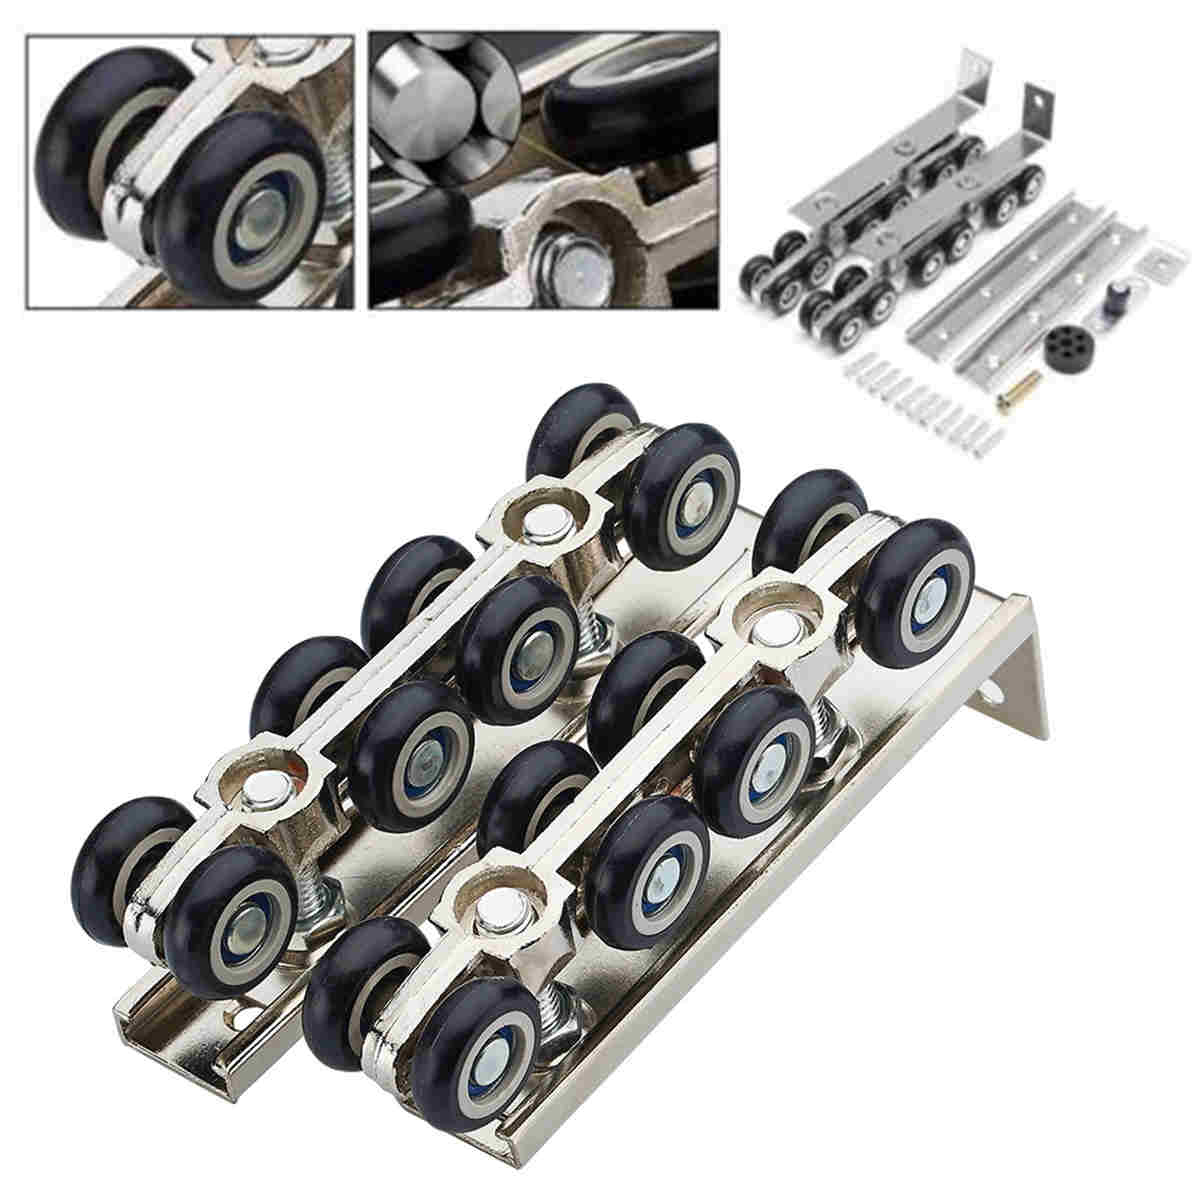 цена на Mayitr 8/12 Pcs Hanging Sliding Door Roller Wooden Door Wheels Closet Hangers Roller Furniture Hardware Kit Hot Selling